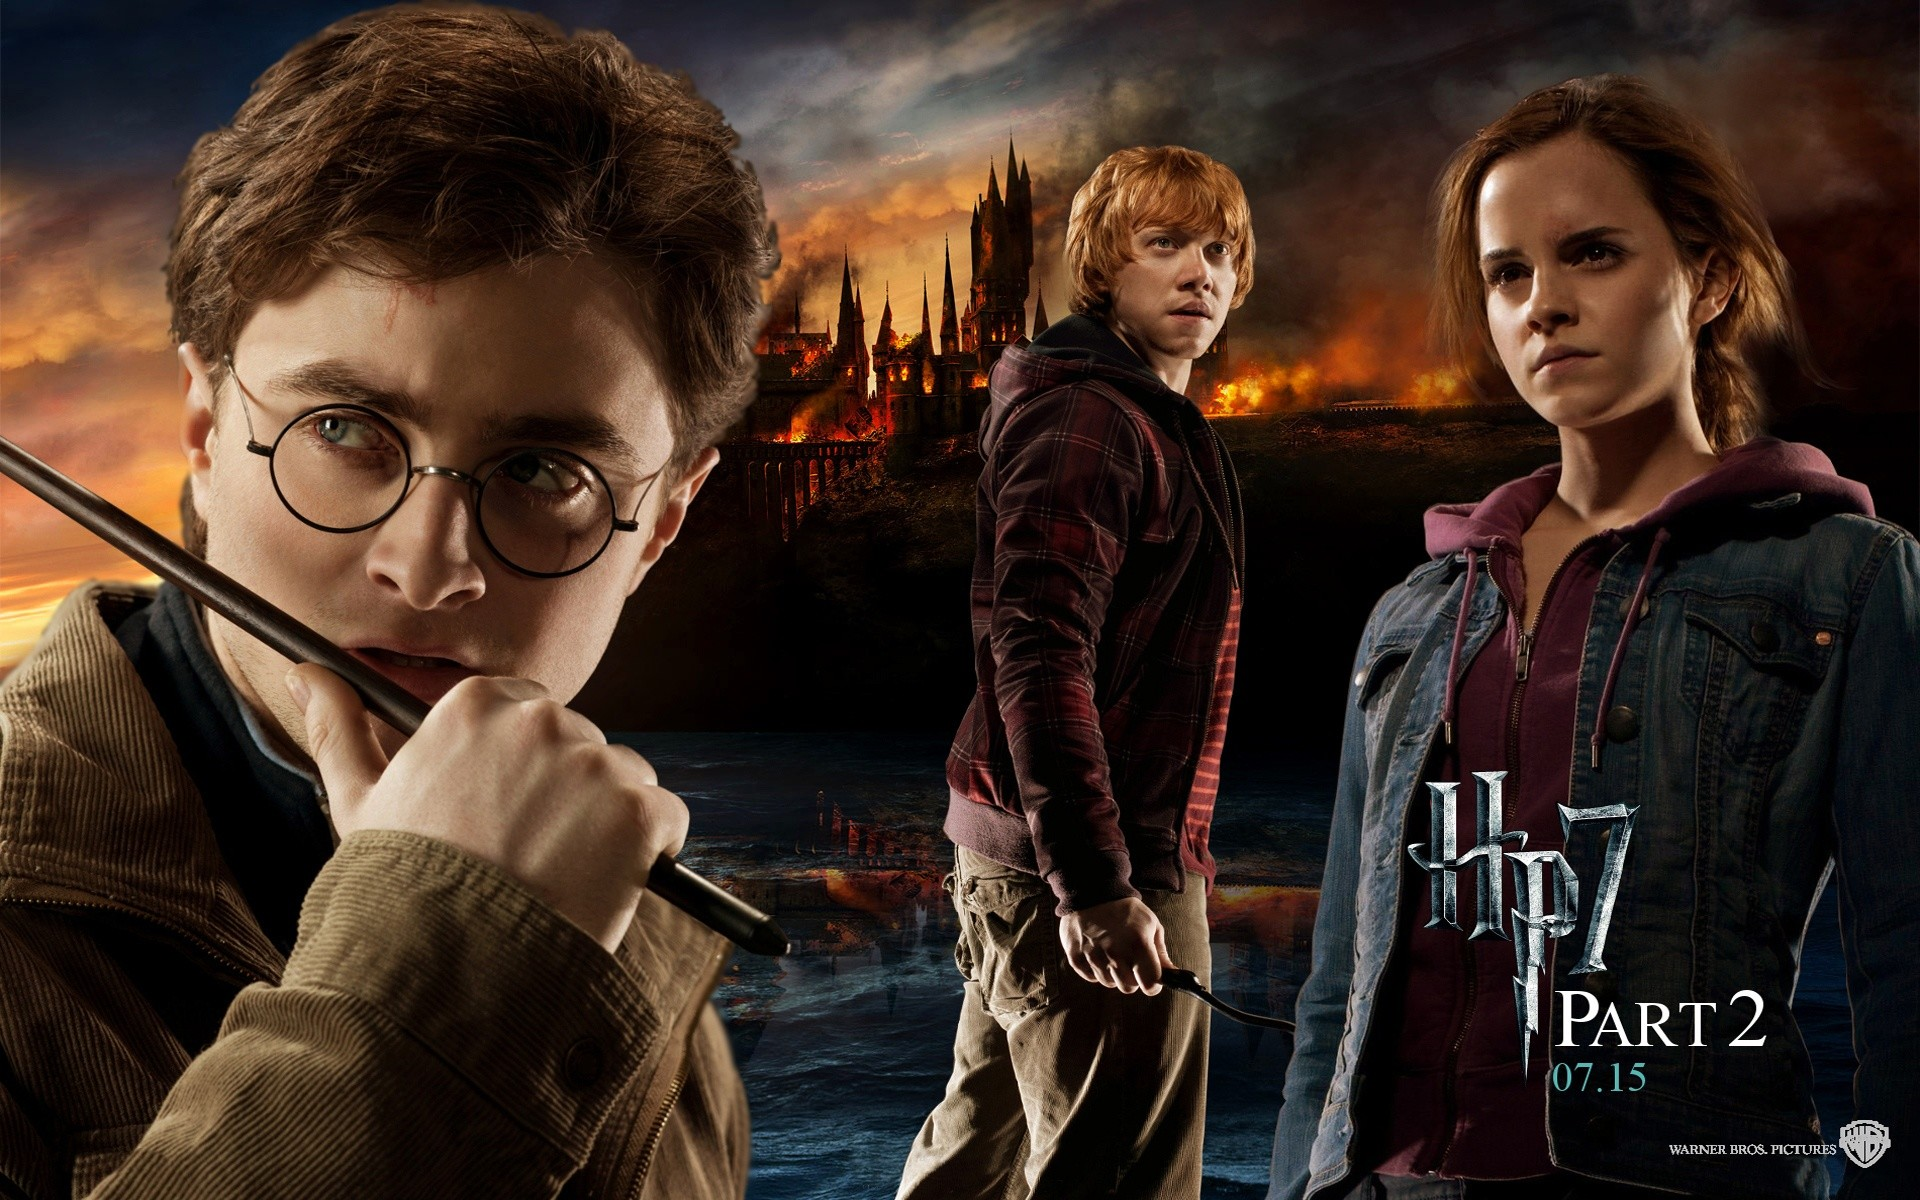 36 Harry Potter and the Deathly Hallows: Part 2 HD Wallpapers | Backgrounds  – Wallpaper Abyss